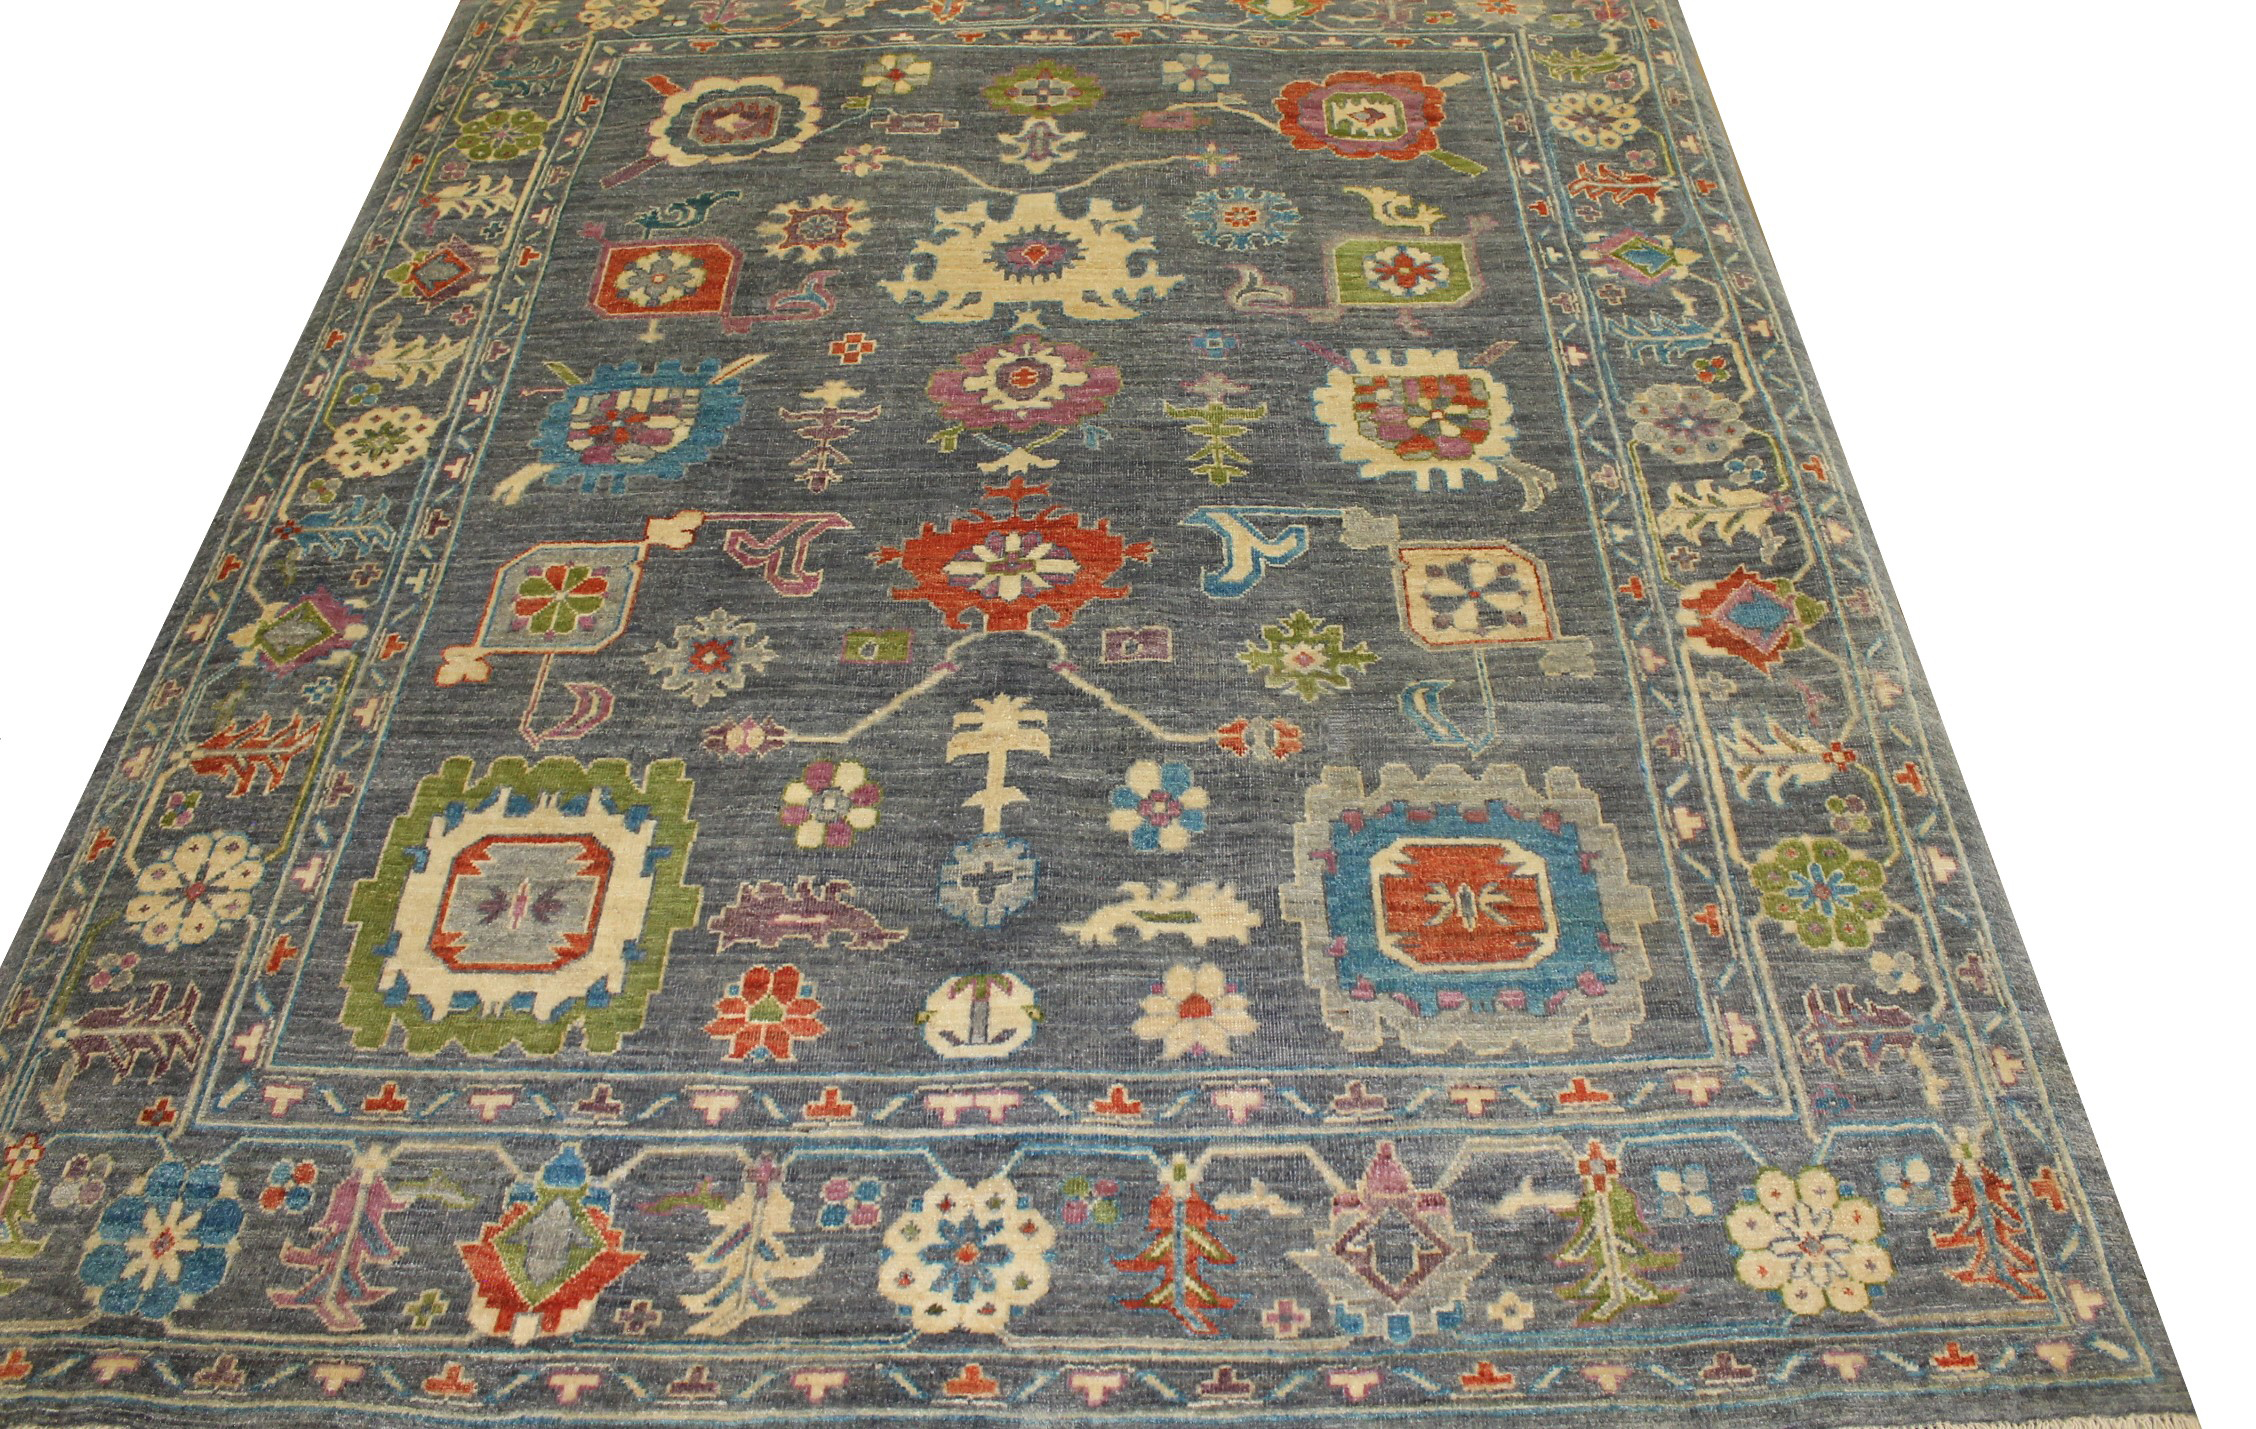 8x10 Oushak Hand Knotted Wool Area Rug - MR023058